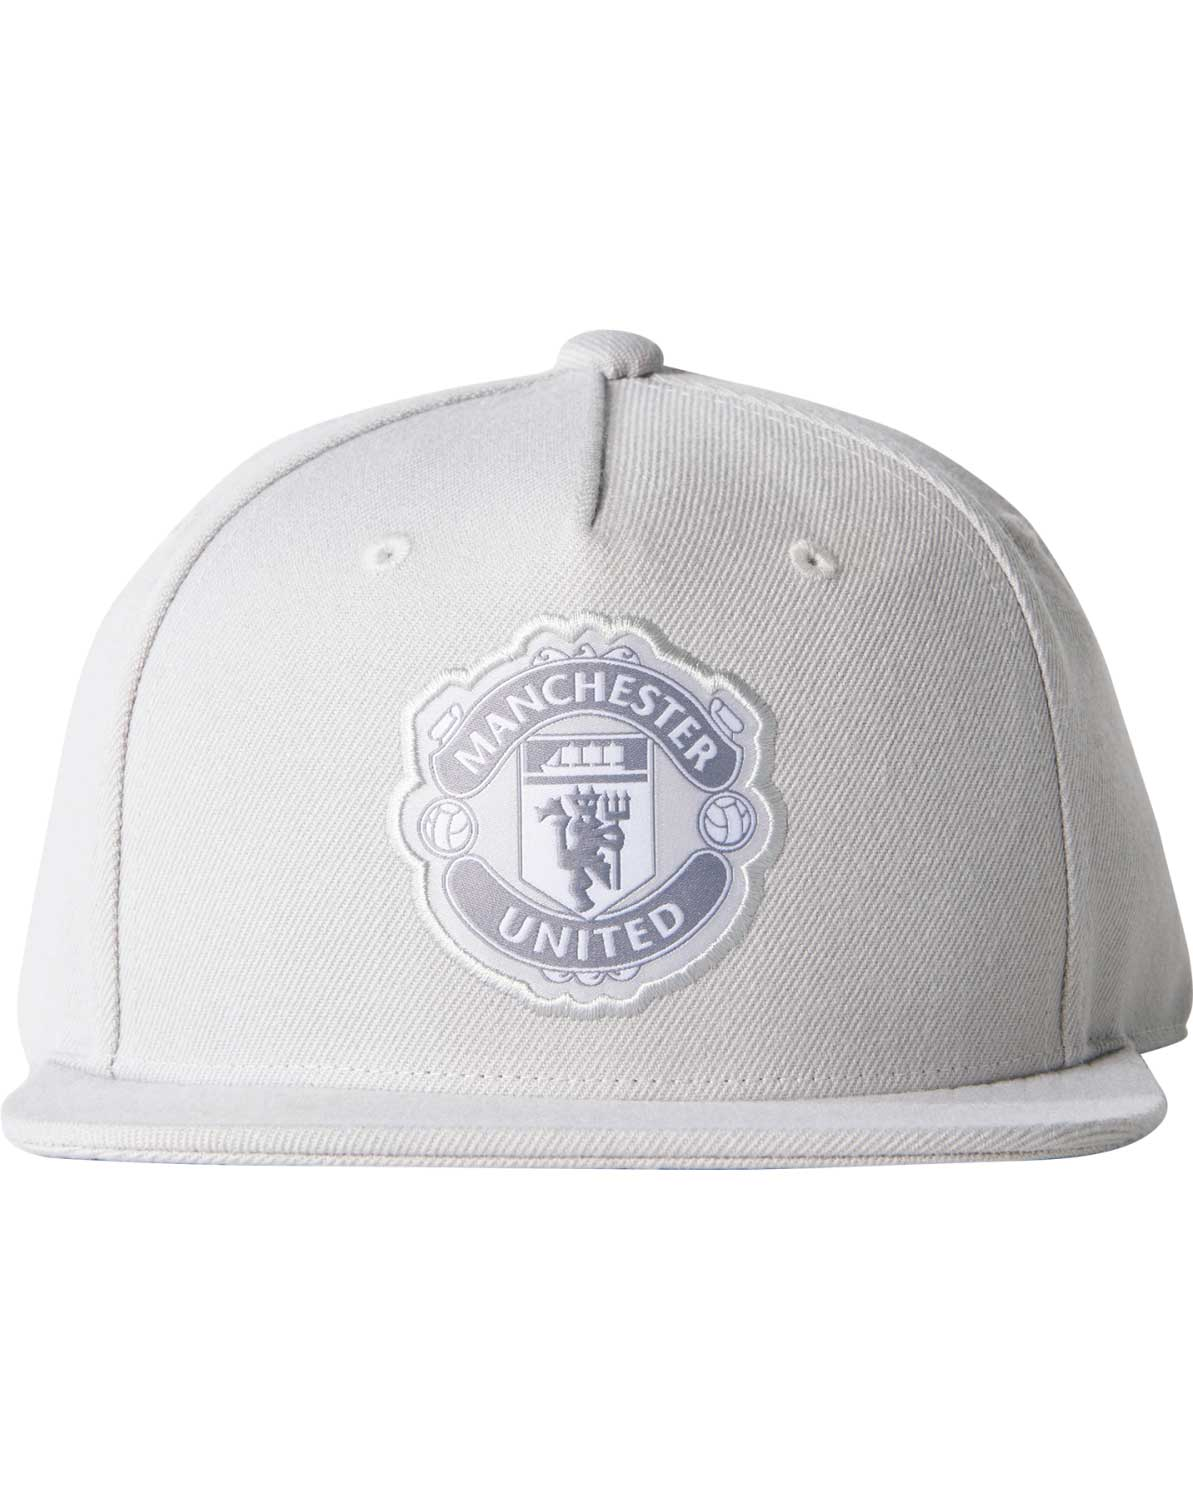 01623348a50 adidas Manchester United Flat Cap - LGH Solid Grey   White